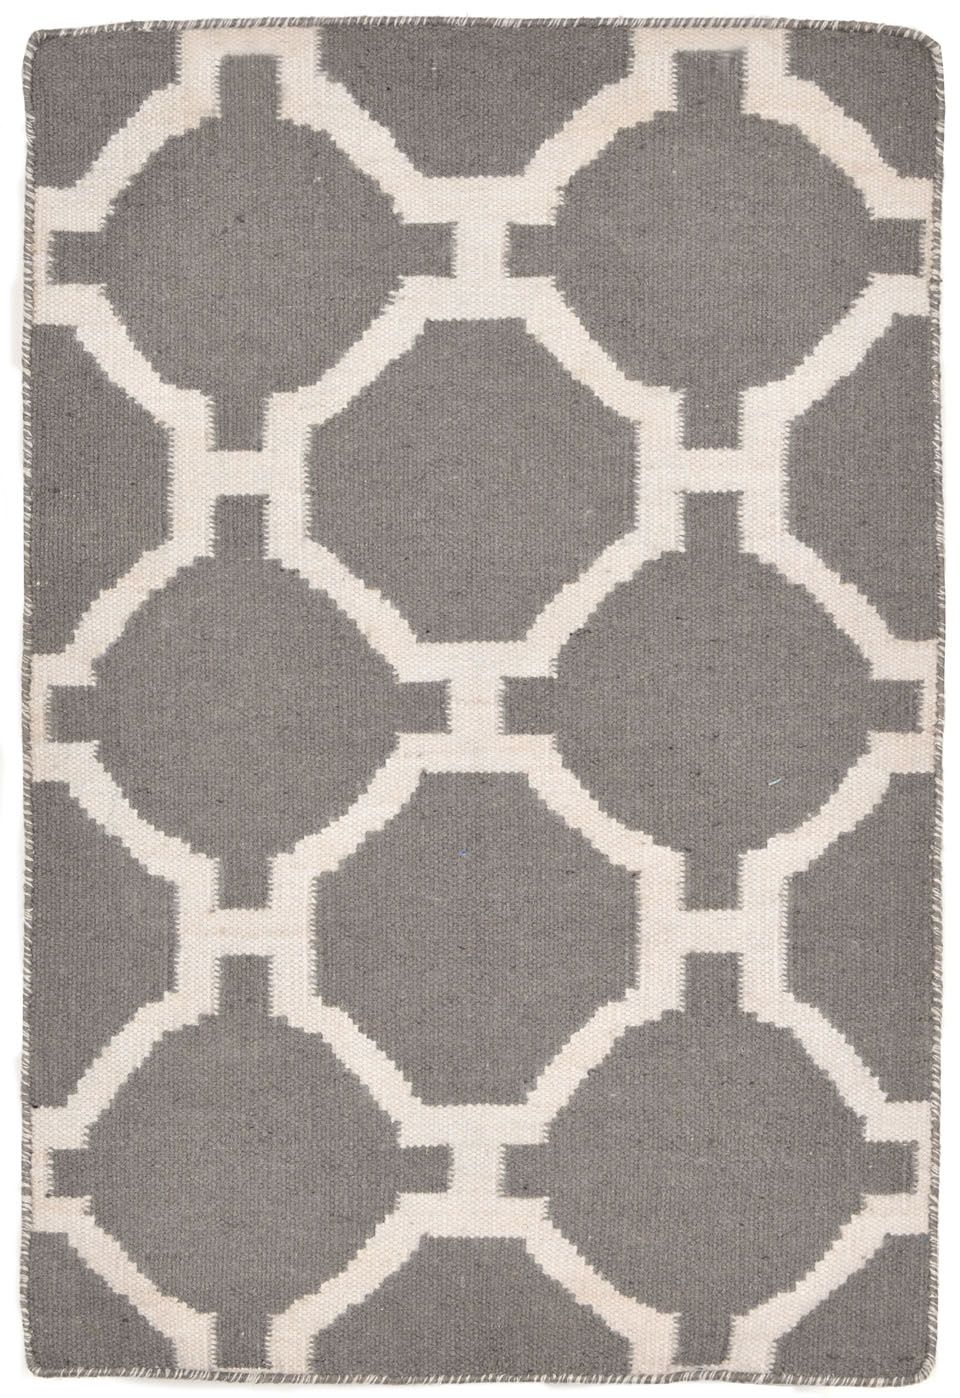 2017 Teacher Rug Giveaway Rug Gallery Rugs Area Rugs